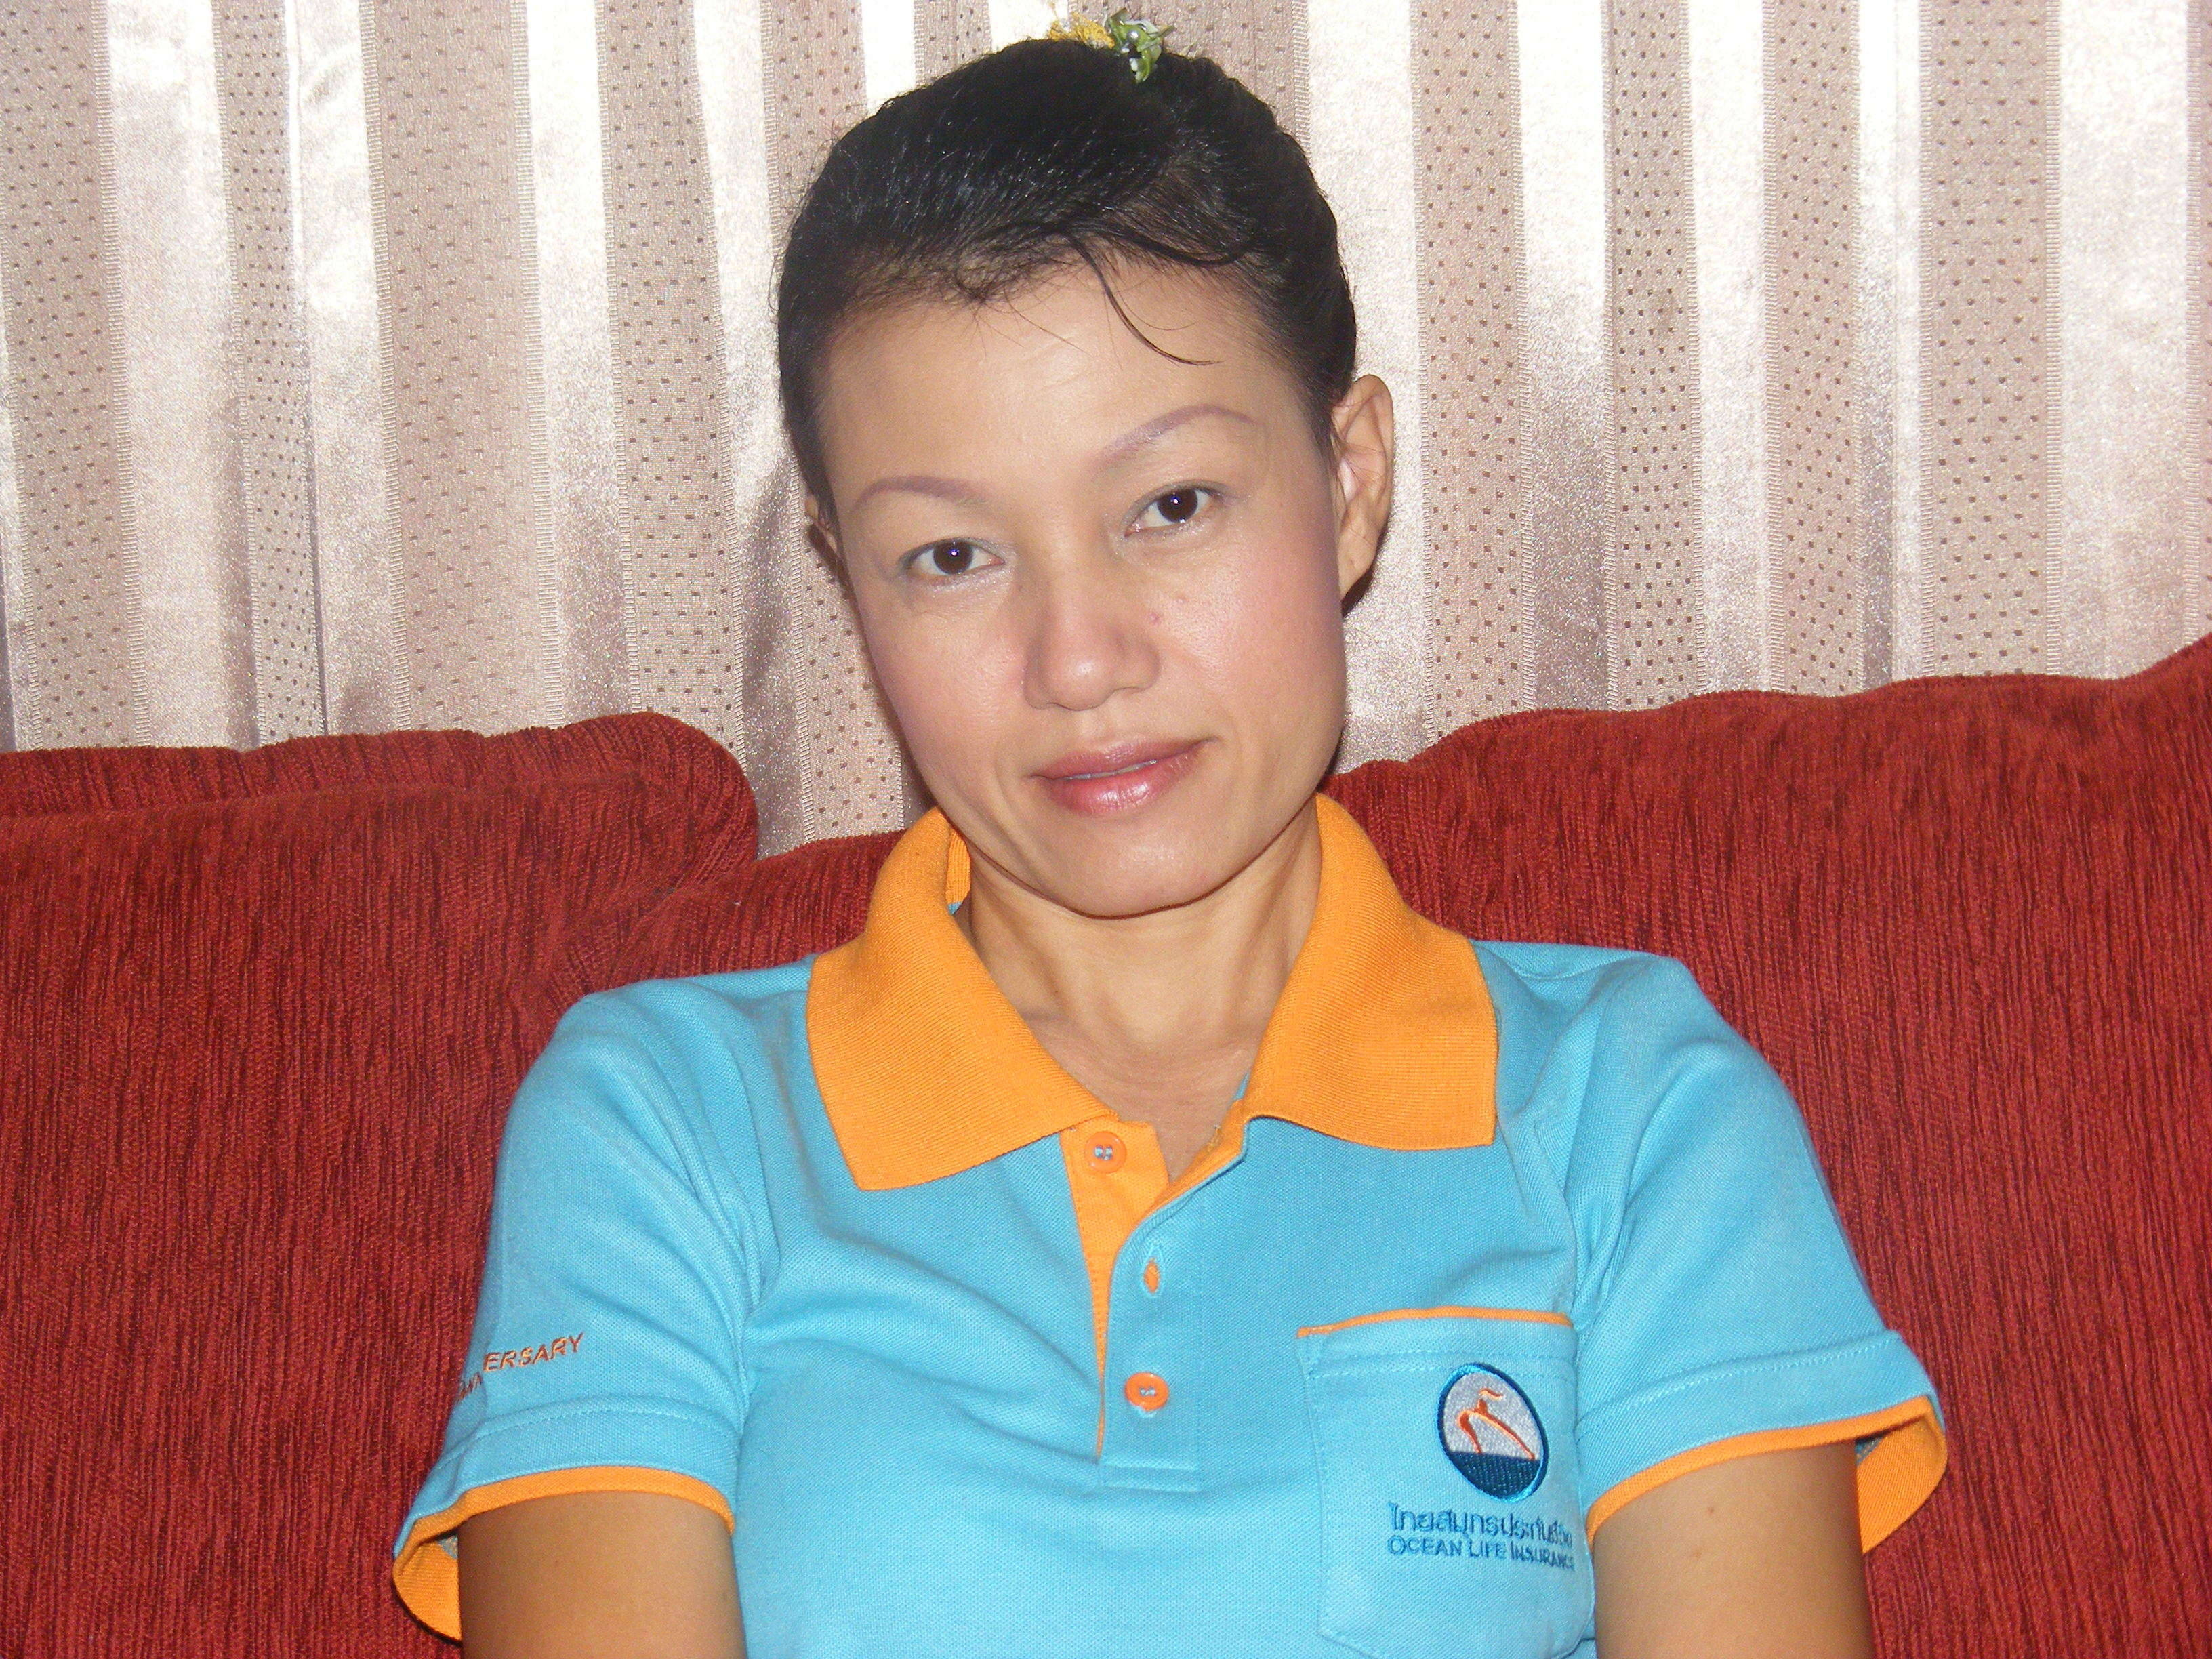 san jose las flores buddhist dating site Single asian women seeking men for marriage 132995 - qing age: 39 - hong kong.